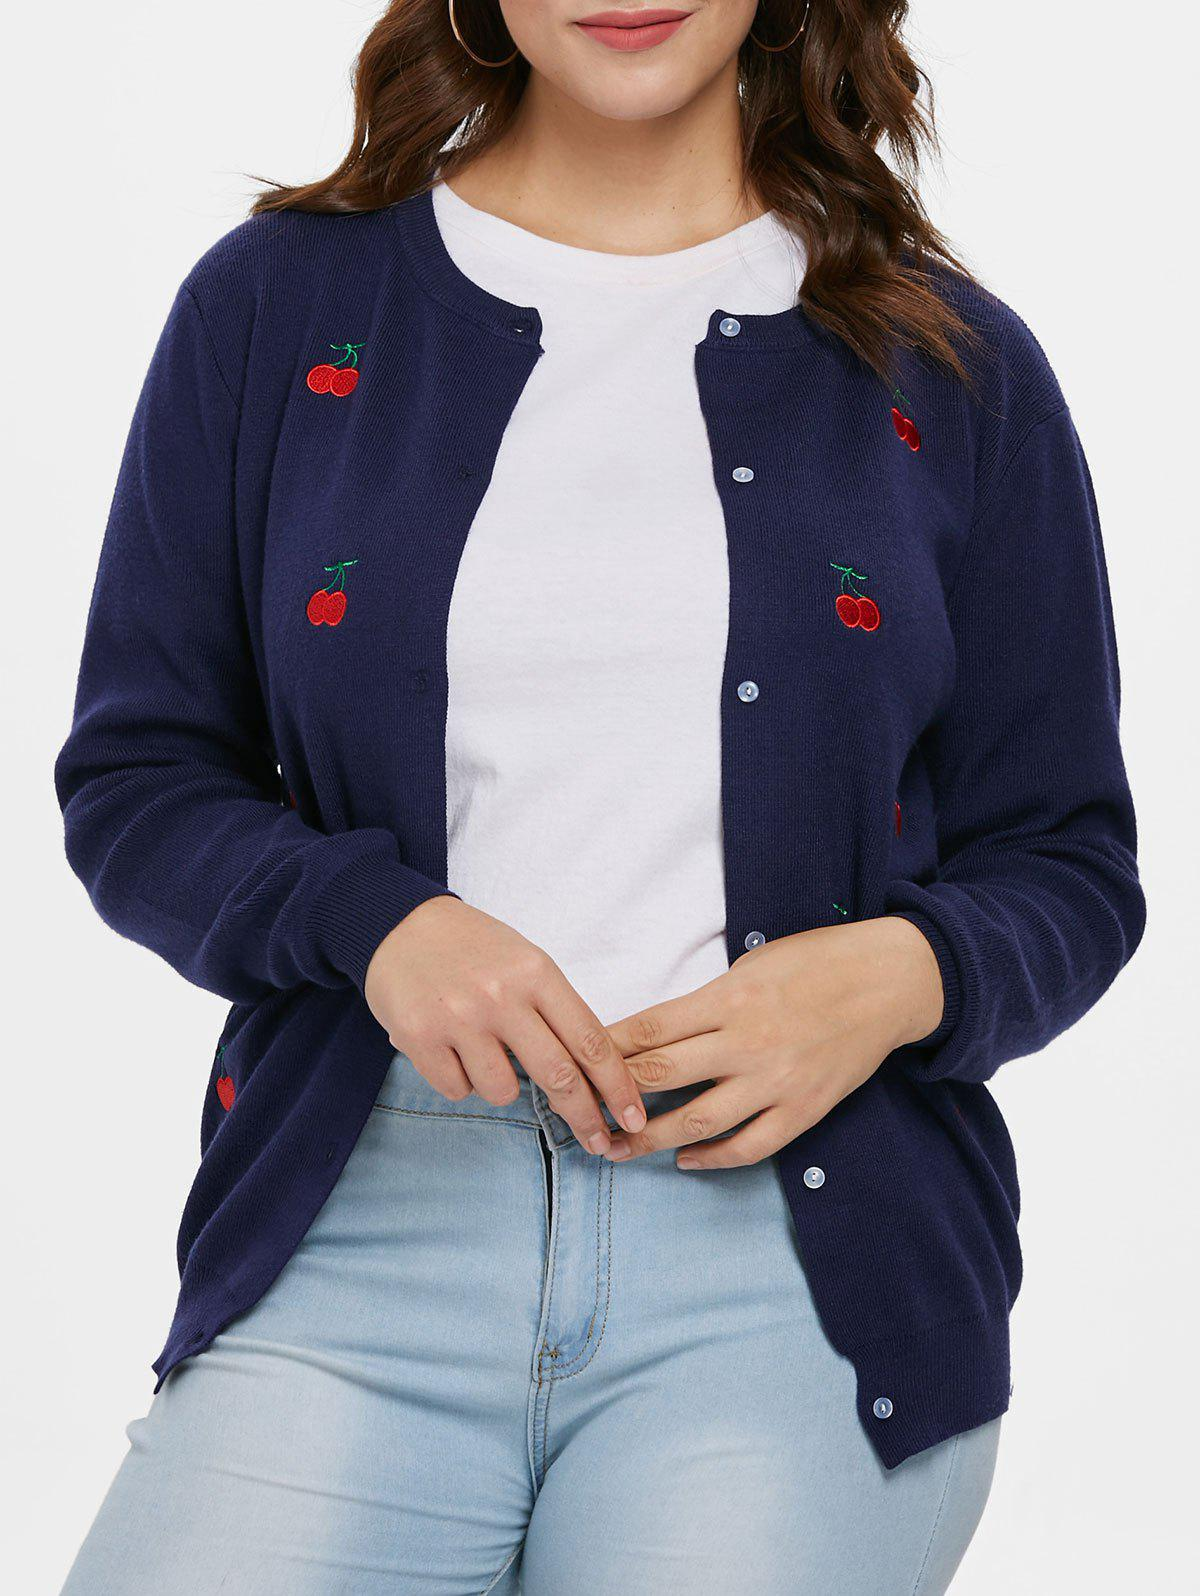 Plus Size Cherry Embroidered Cardigan - CADETBLUE 1X